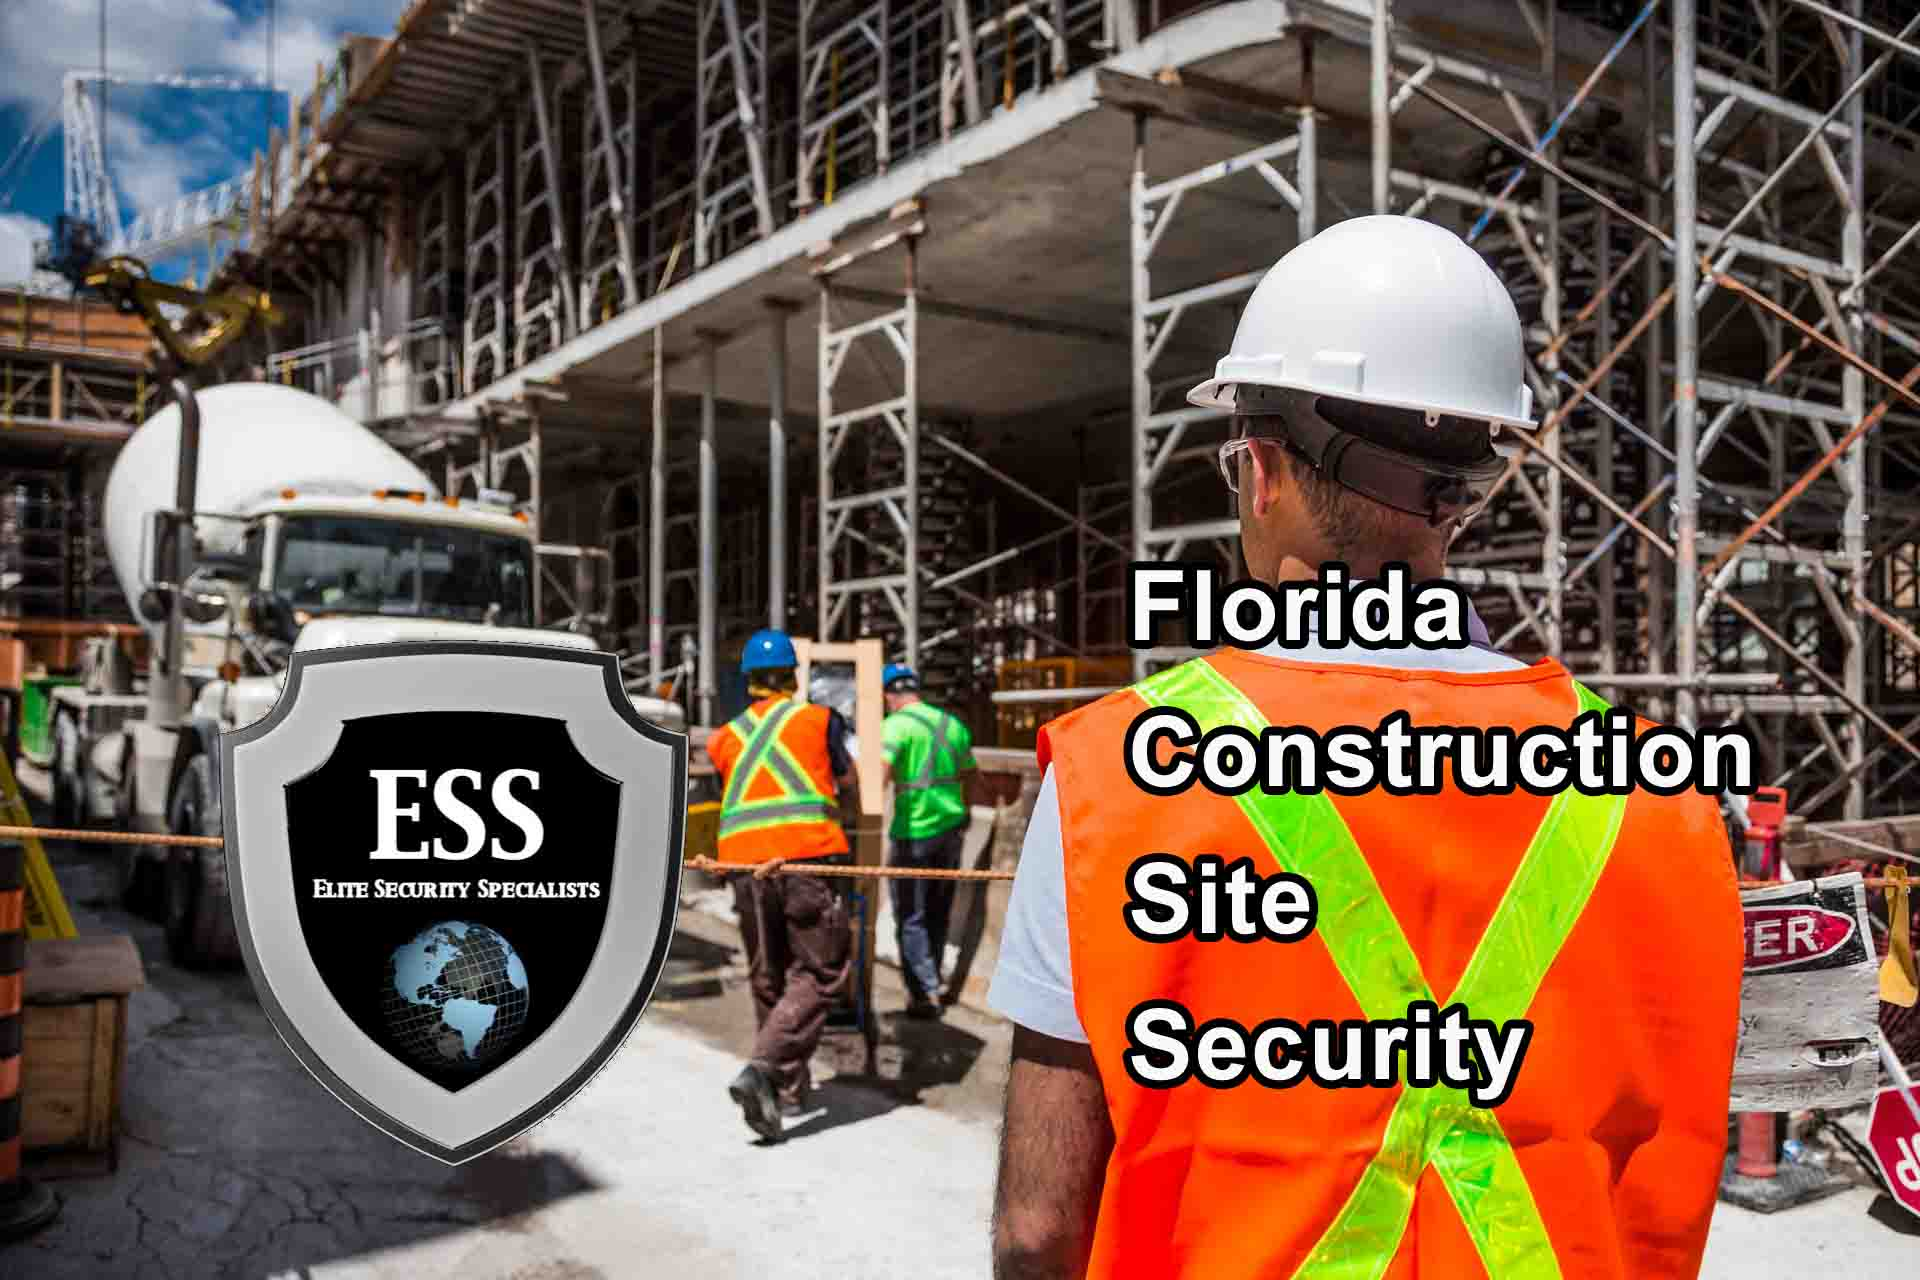 Florida Construction Site Security 2